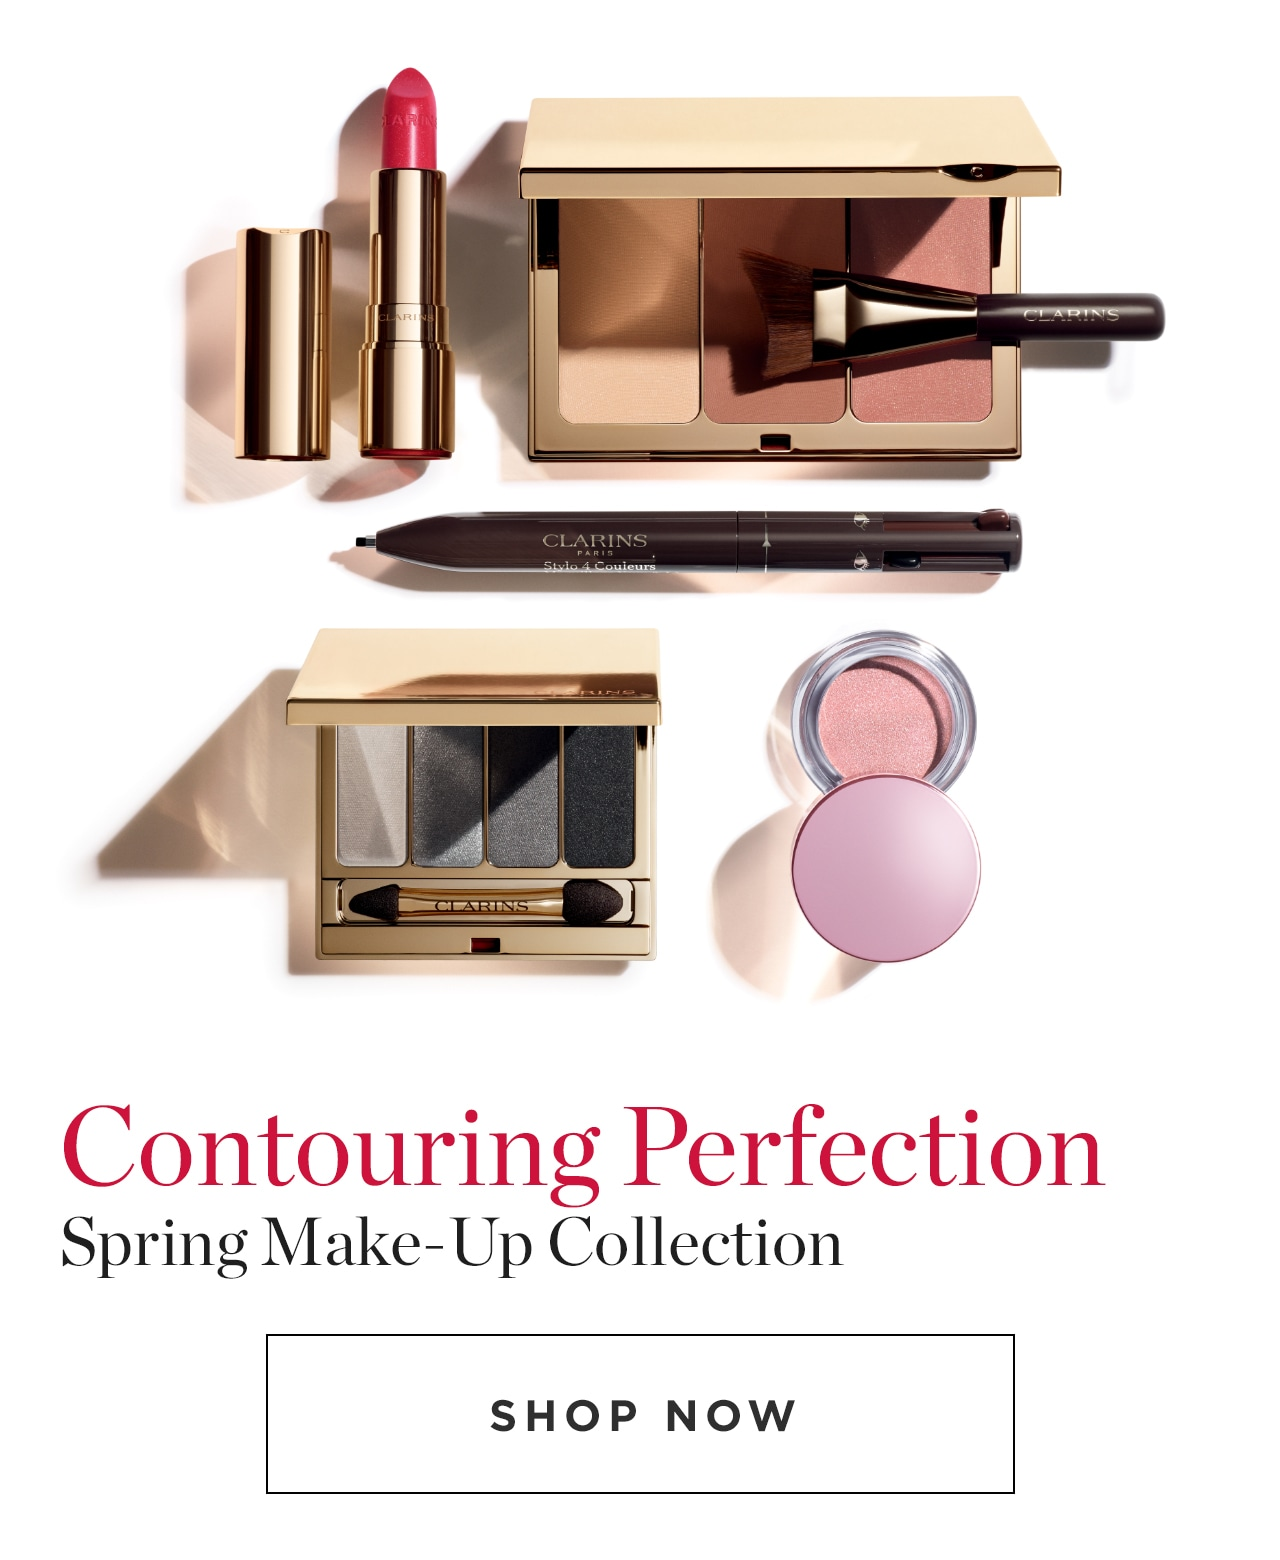 Contouring Perfection Spring Make-Up Collection Shop Now